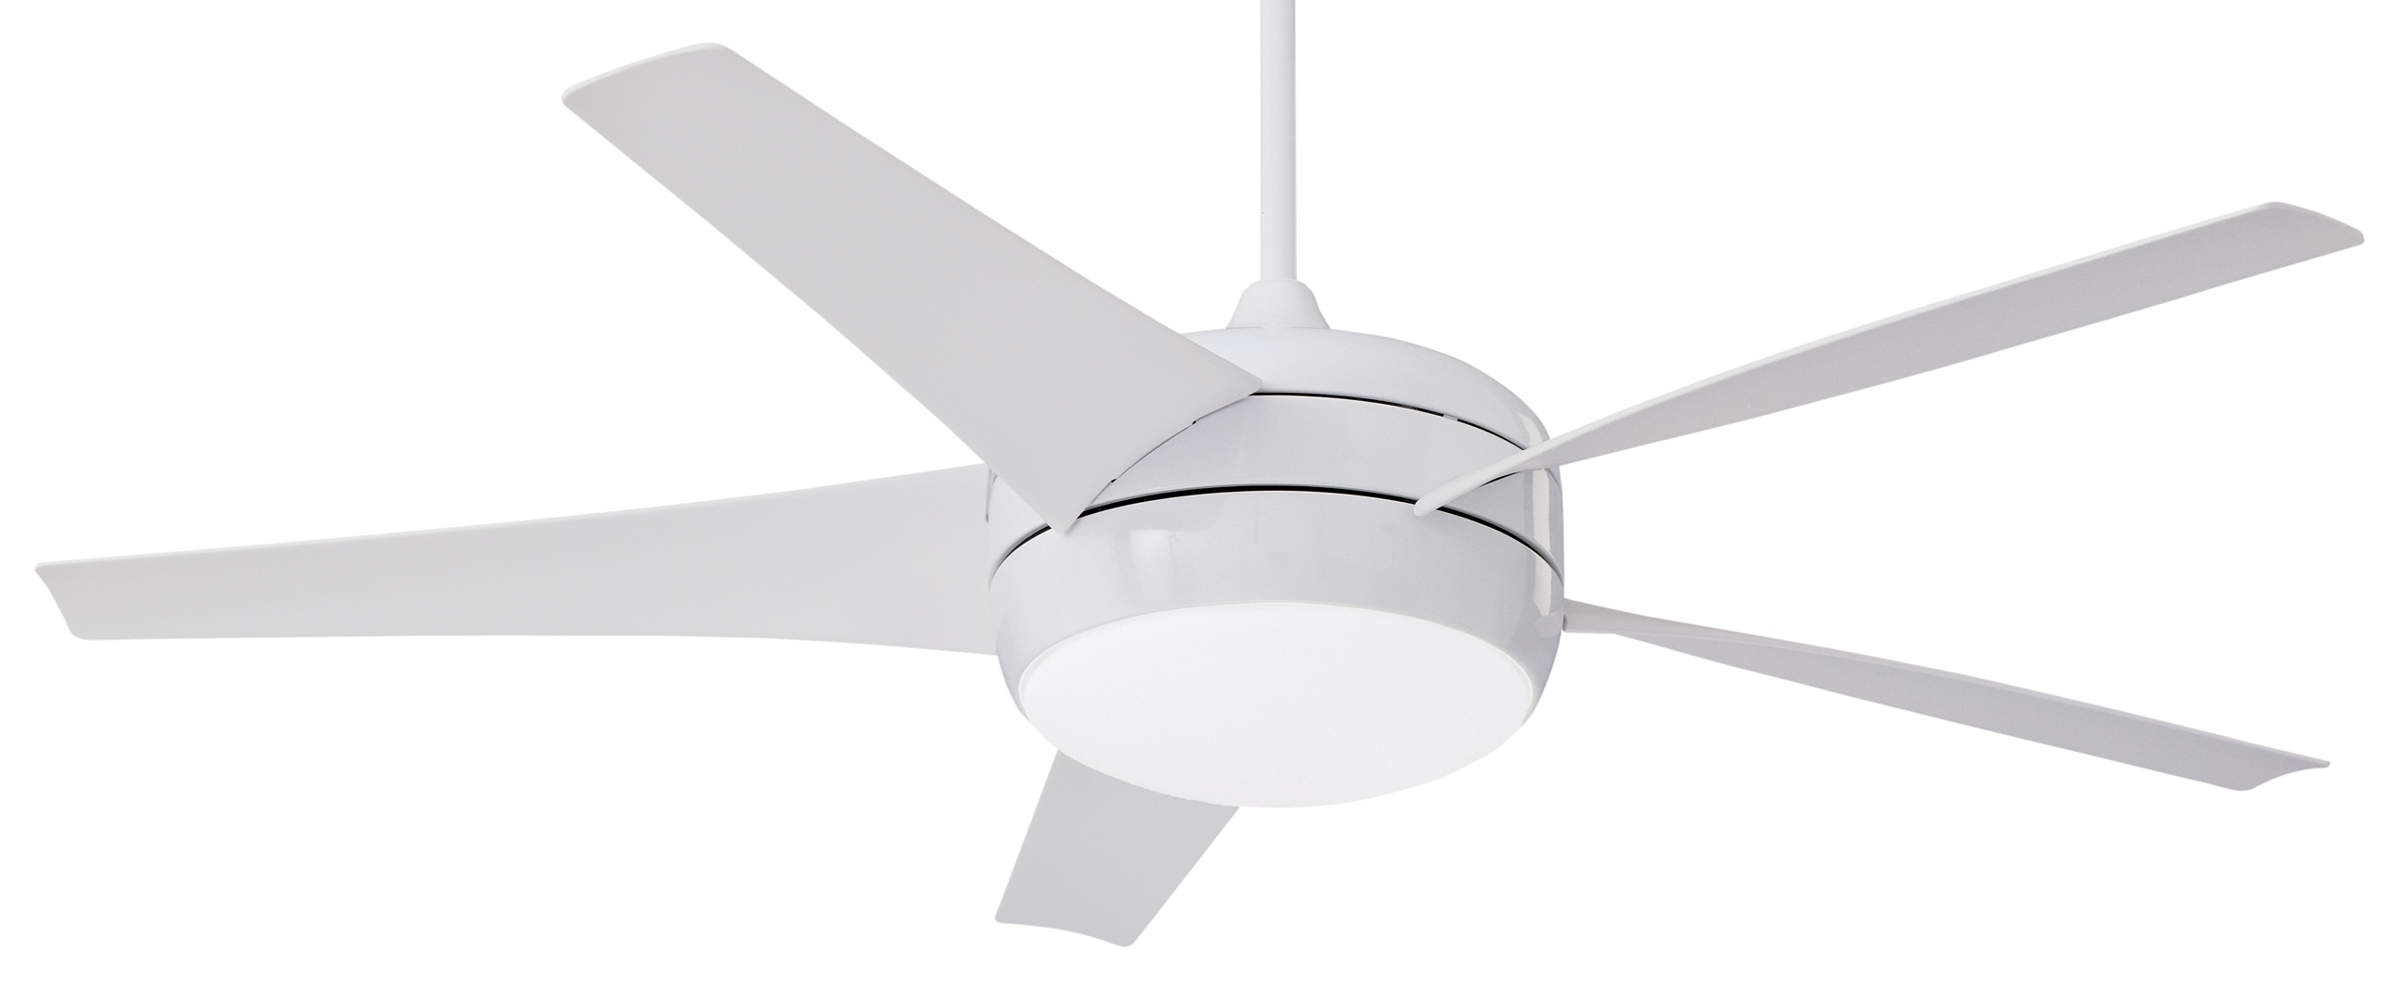 Most Recently Released White Outdoor Ceiling Fans With Lights Inside Emerson Midway Eco Dc Motor Ceiling Fan Cfww In Gloss White With (View 9 of 20)